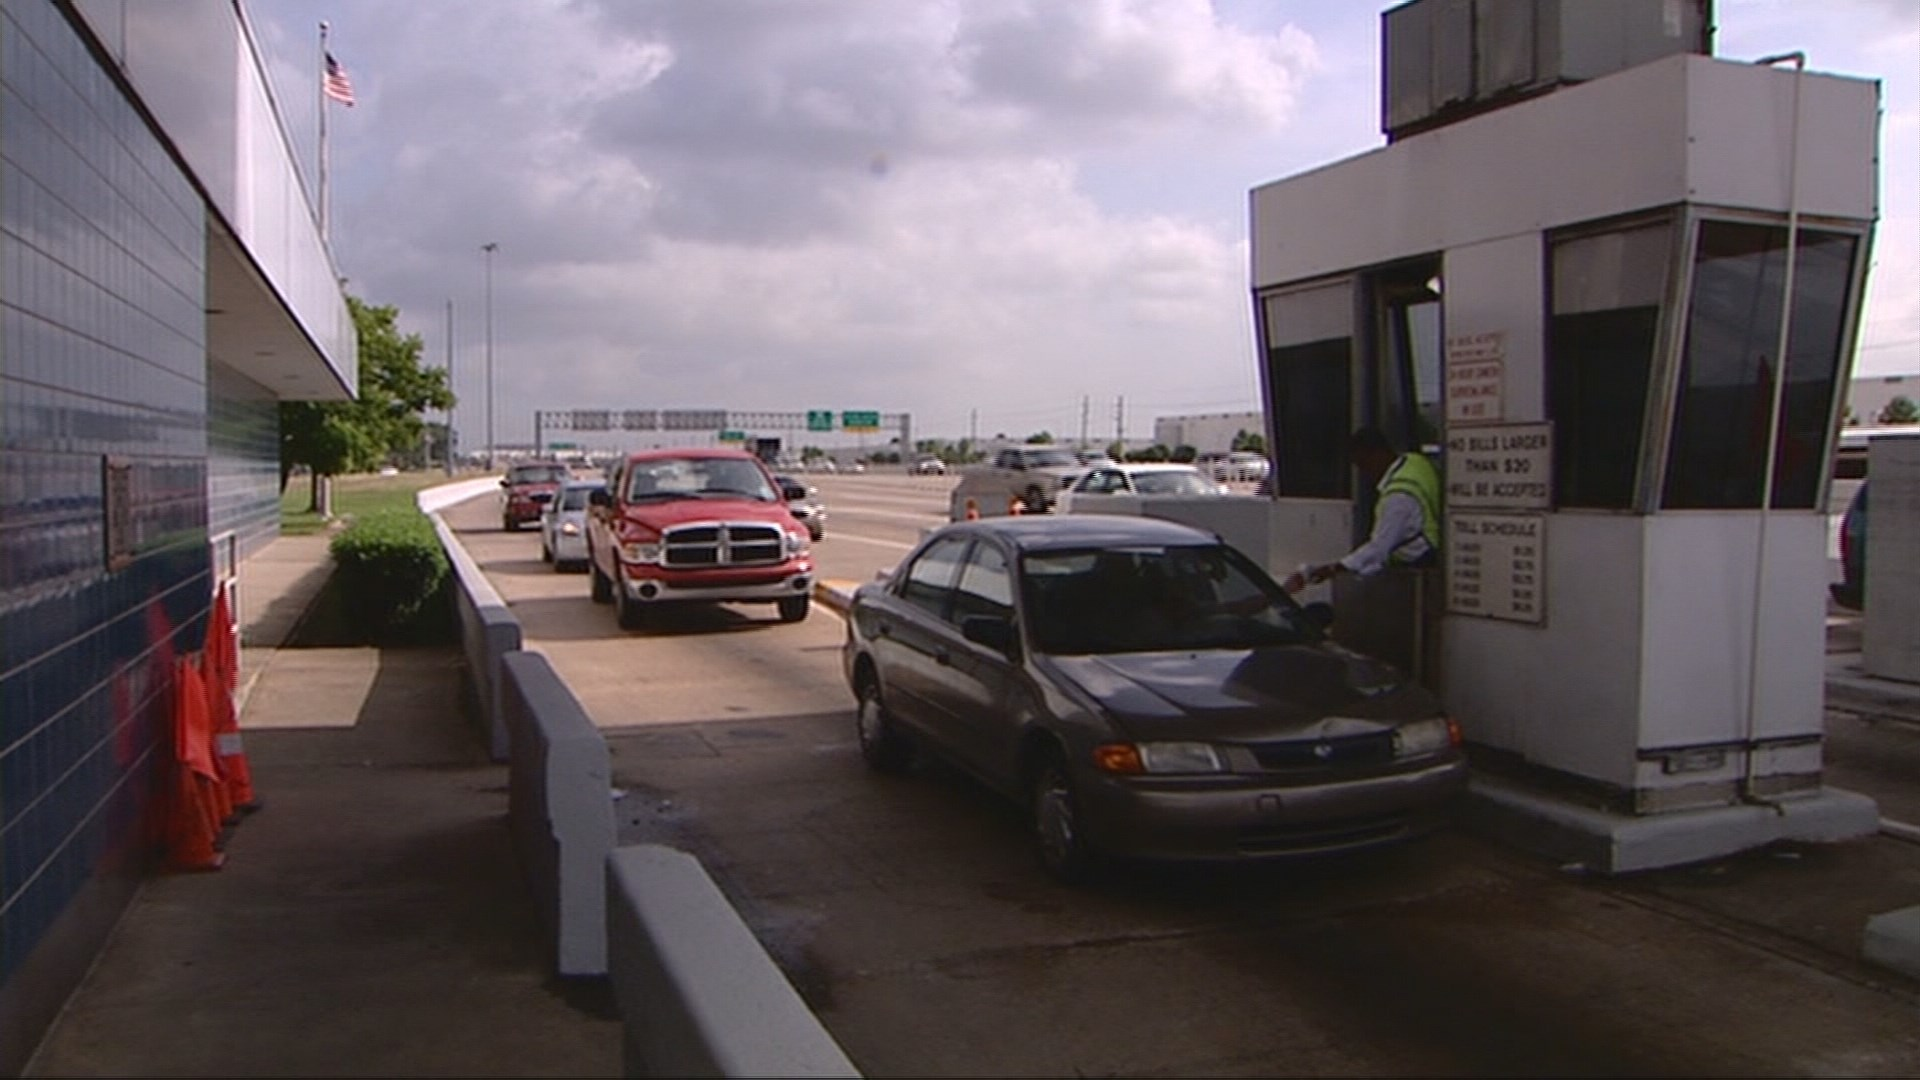 road tolls Governor hogan rolls back tolls statewide - saving marylanders $54 million a year the following toll reductions and changes are effective july 1, 2015.